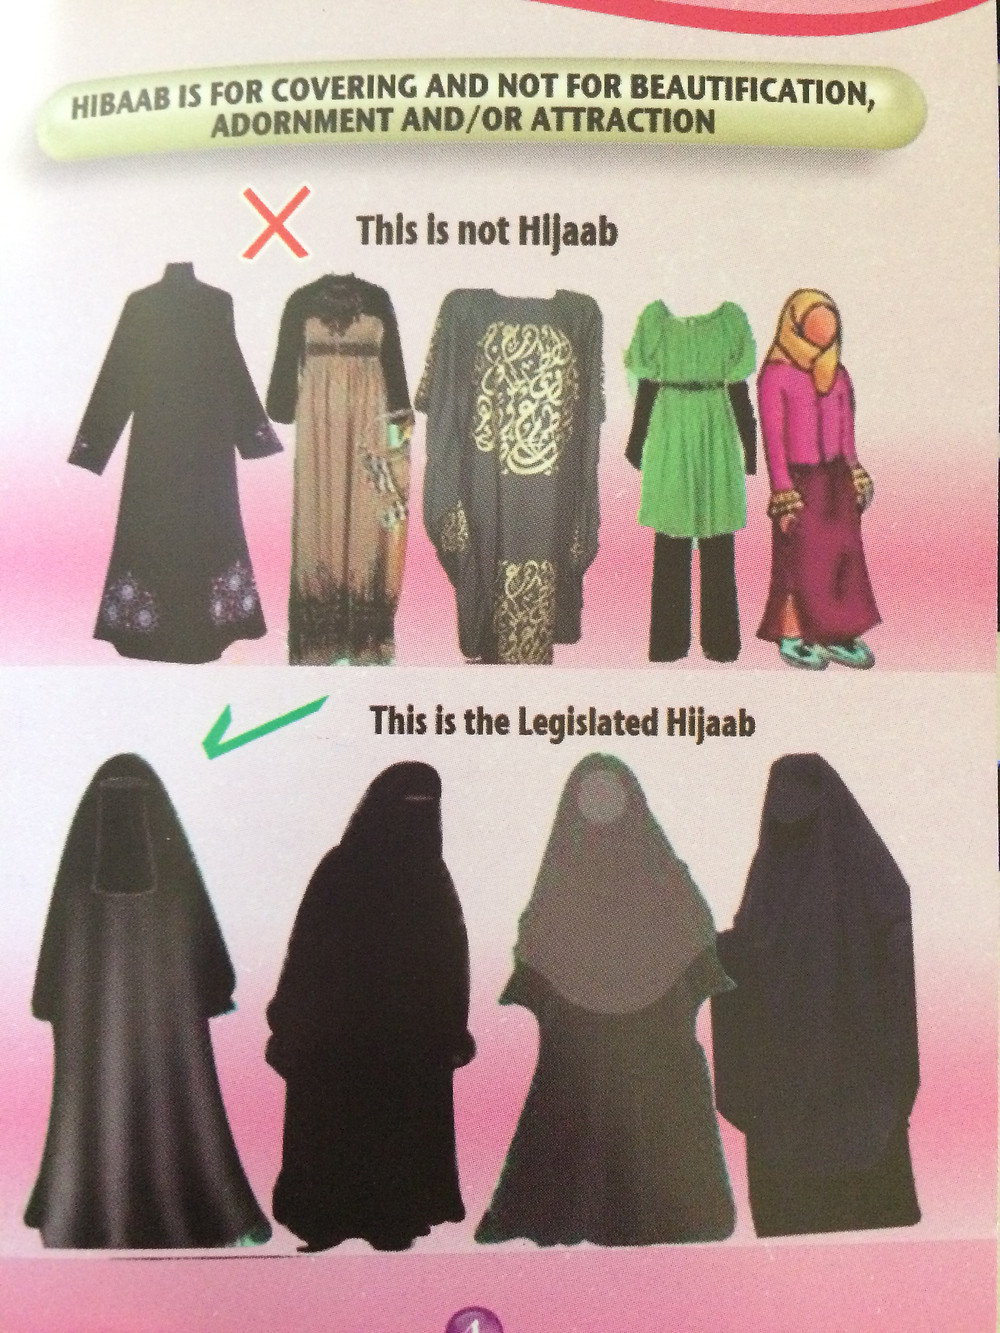 A flyer given out to female pilgrims at the Masjid al-Haram in Makkah